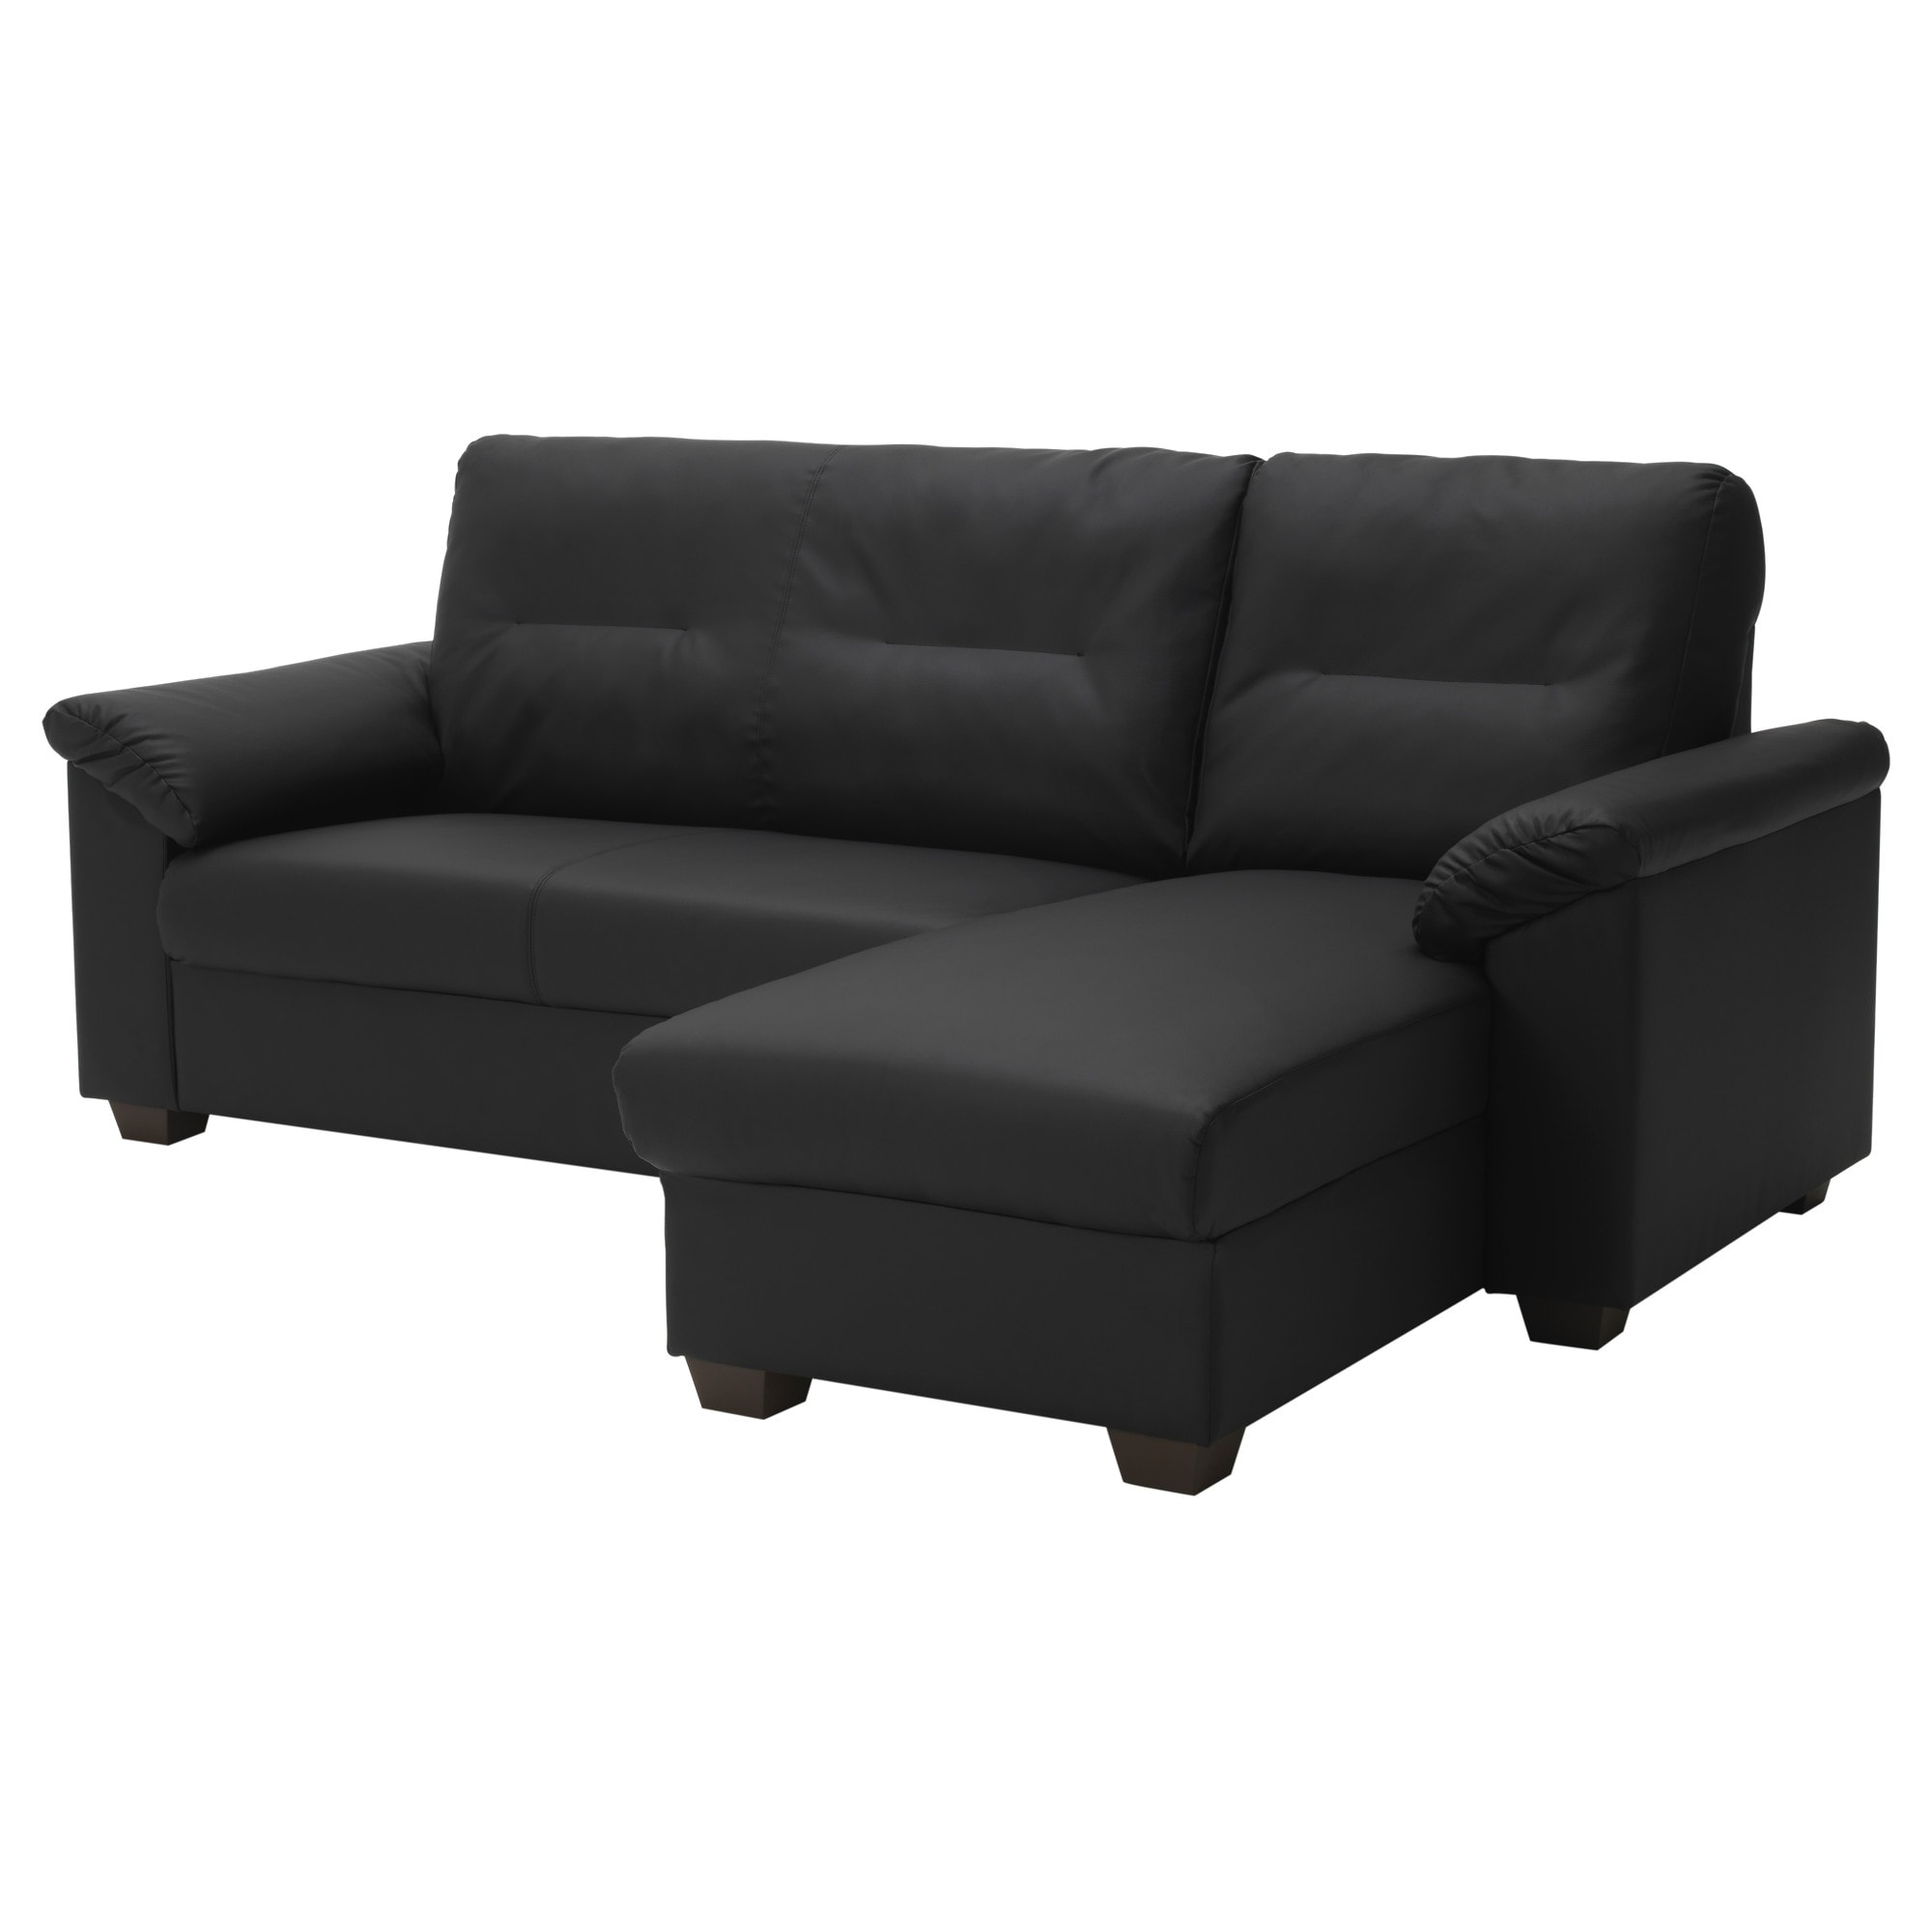 Lovely KNISLINGE Sectional, 3 Seat Right   IKEA Part 28